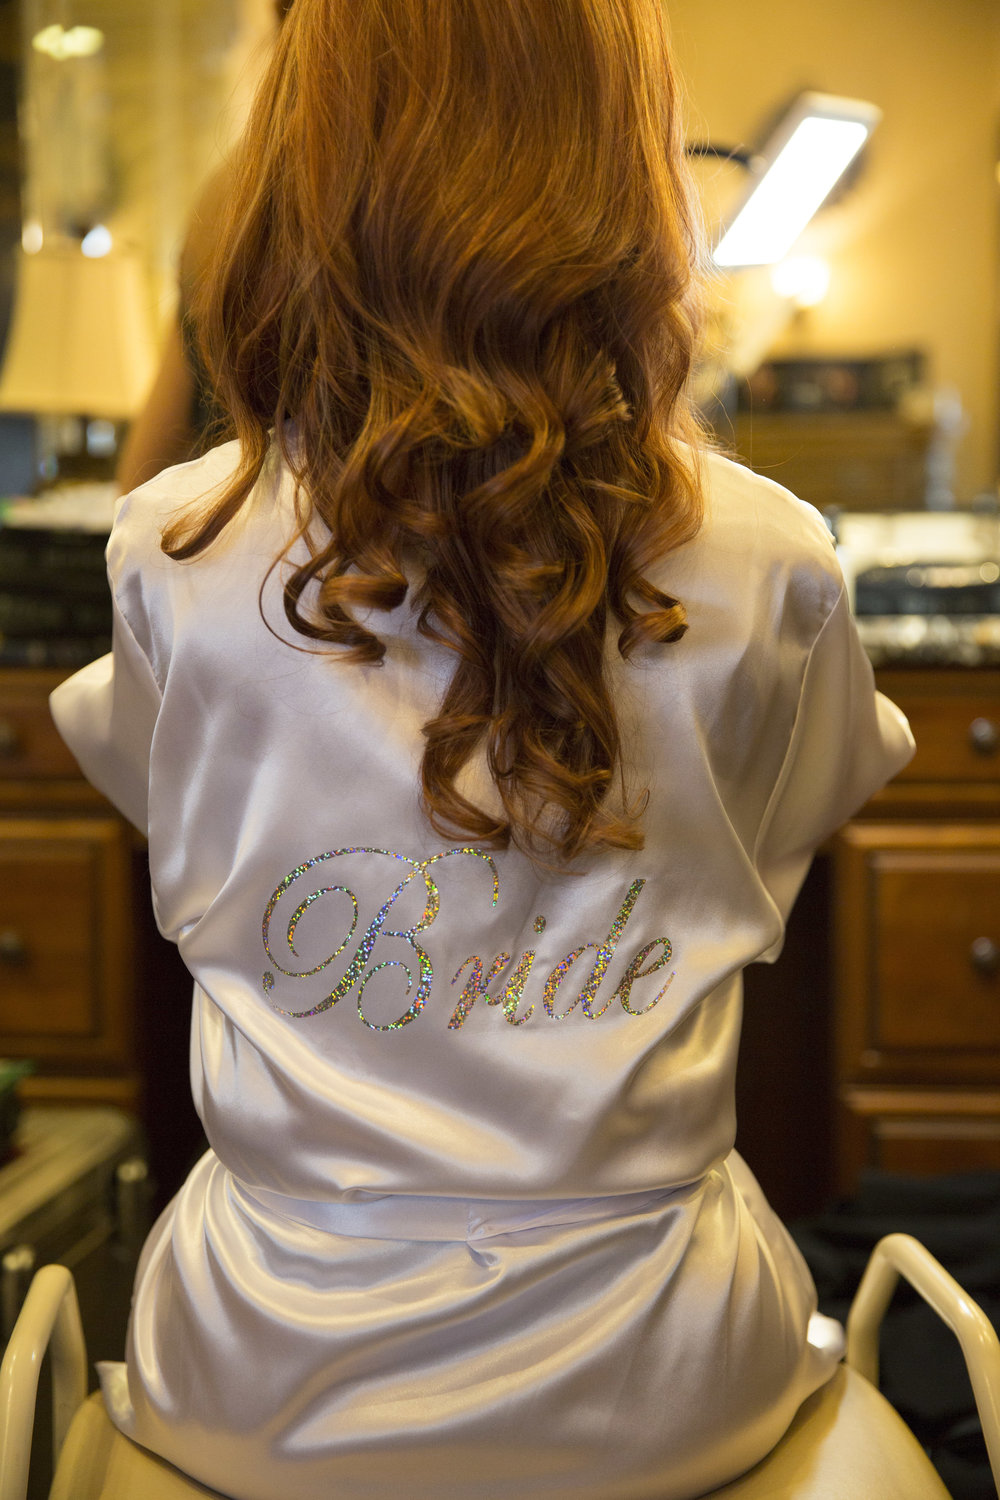 Bling Satin Bride Robe. Luxury Las Vegas Wedding Planner Andrea Eppolito.  Image by AltF Photography.